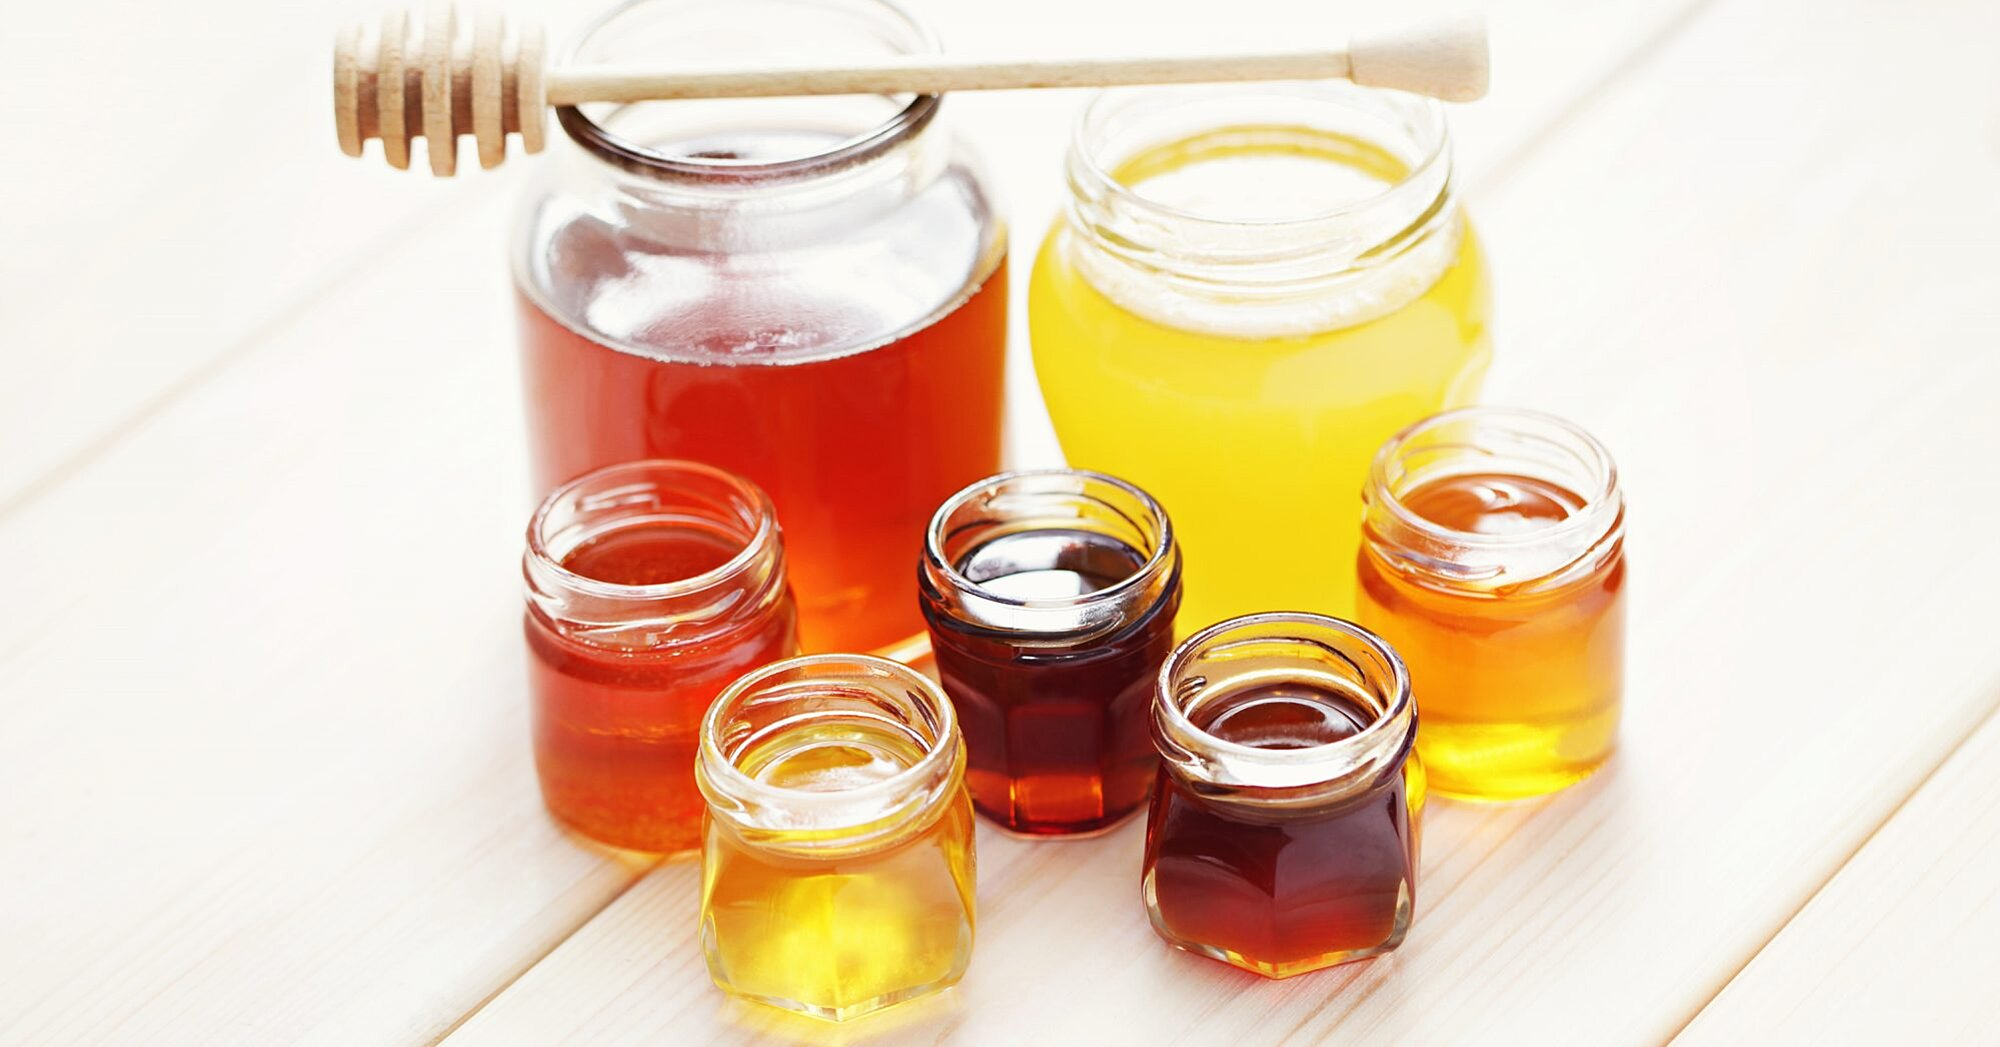 We Tried More Than 3 Dozen Types of Honey — These Are the 10 Worth Buying